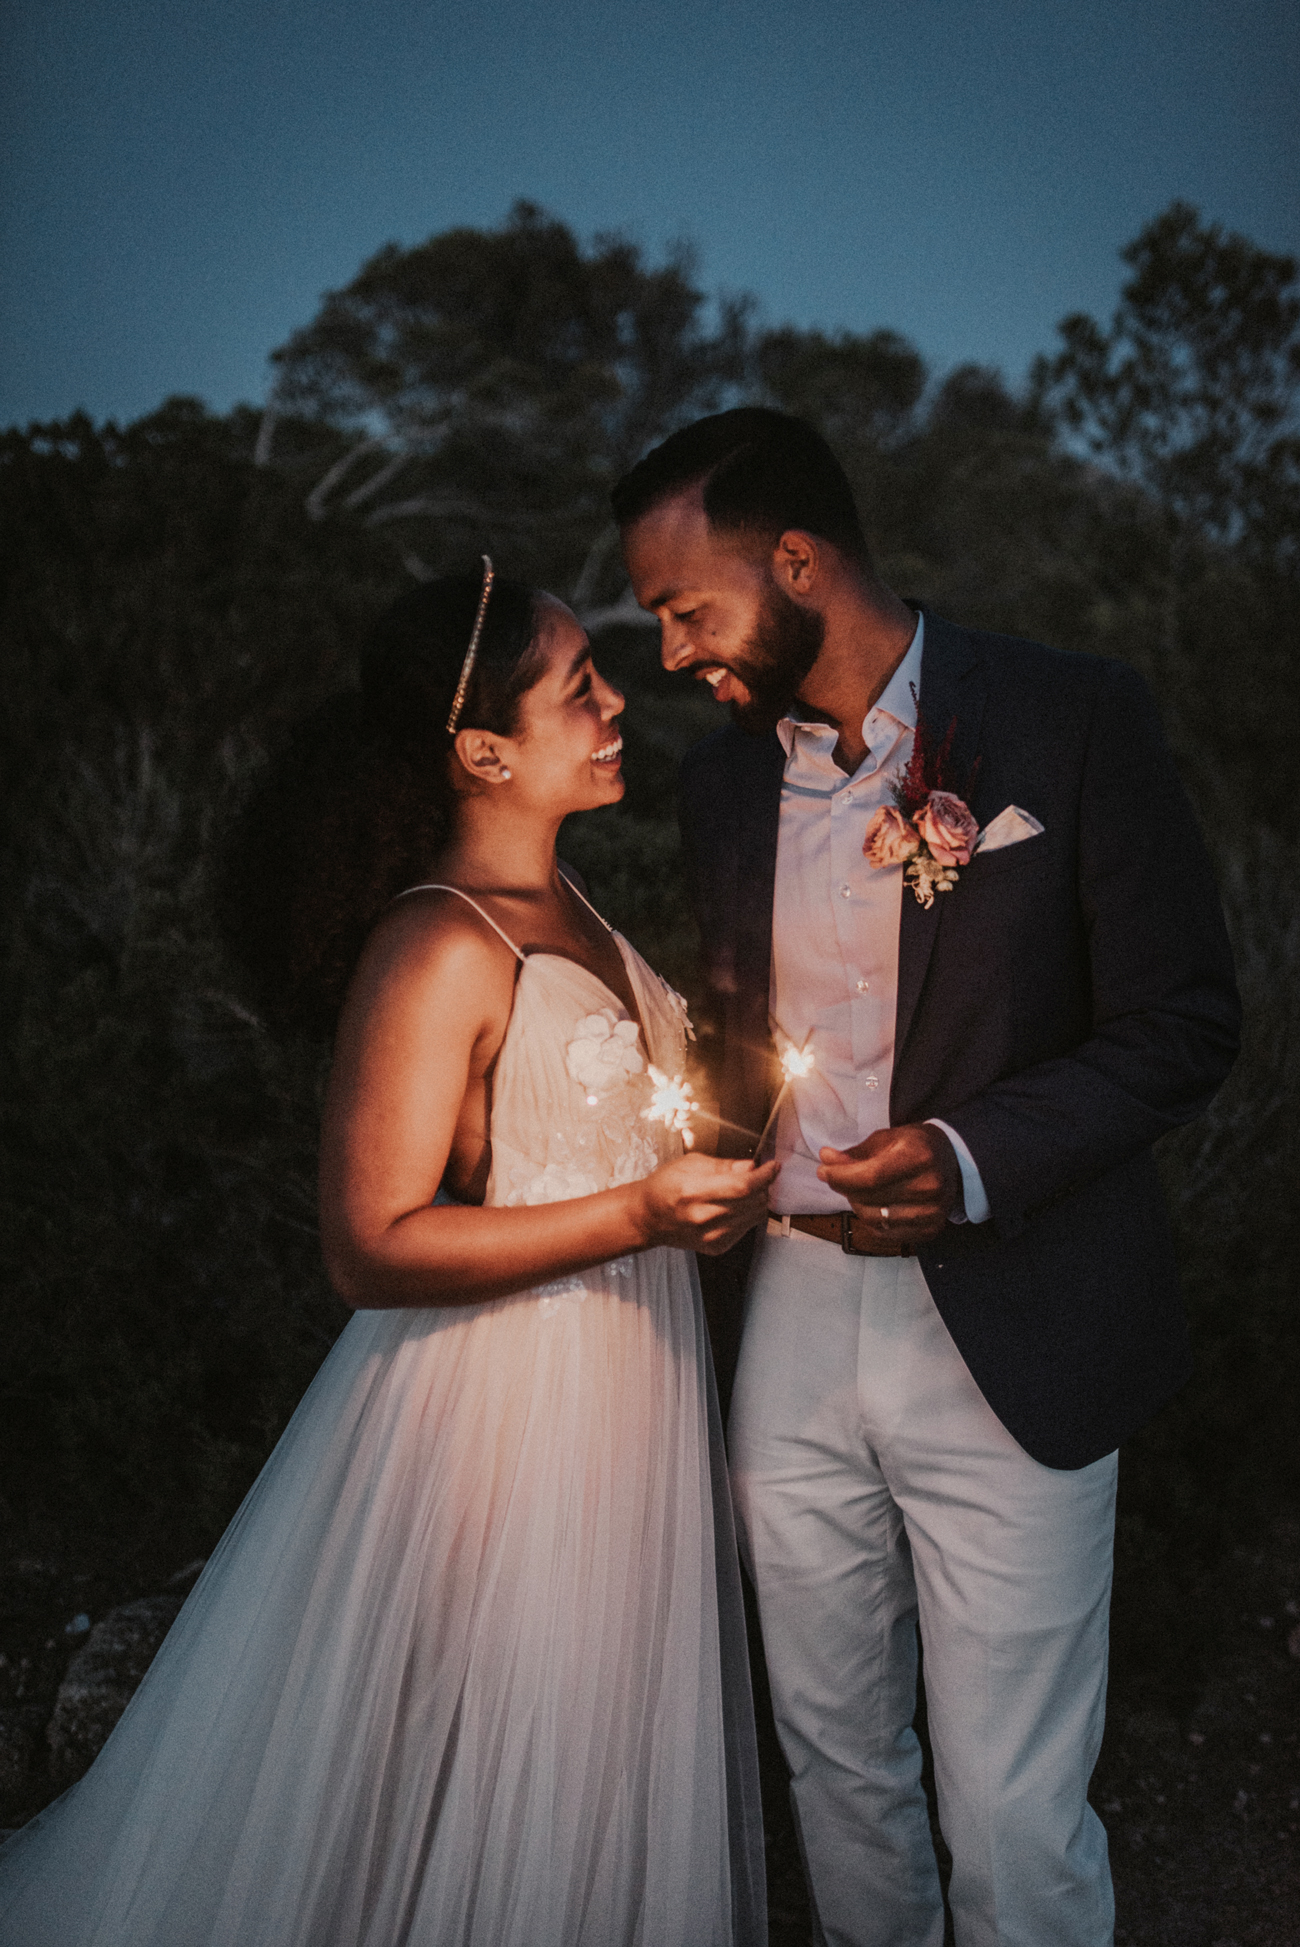 couple faces each other smiling while holding sparklers